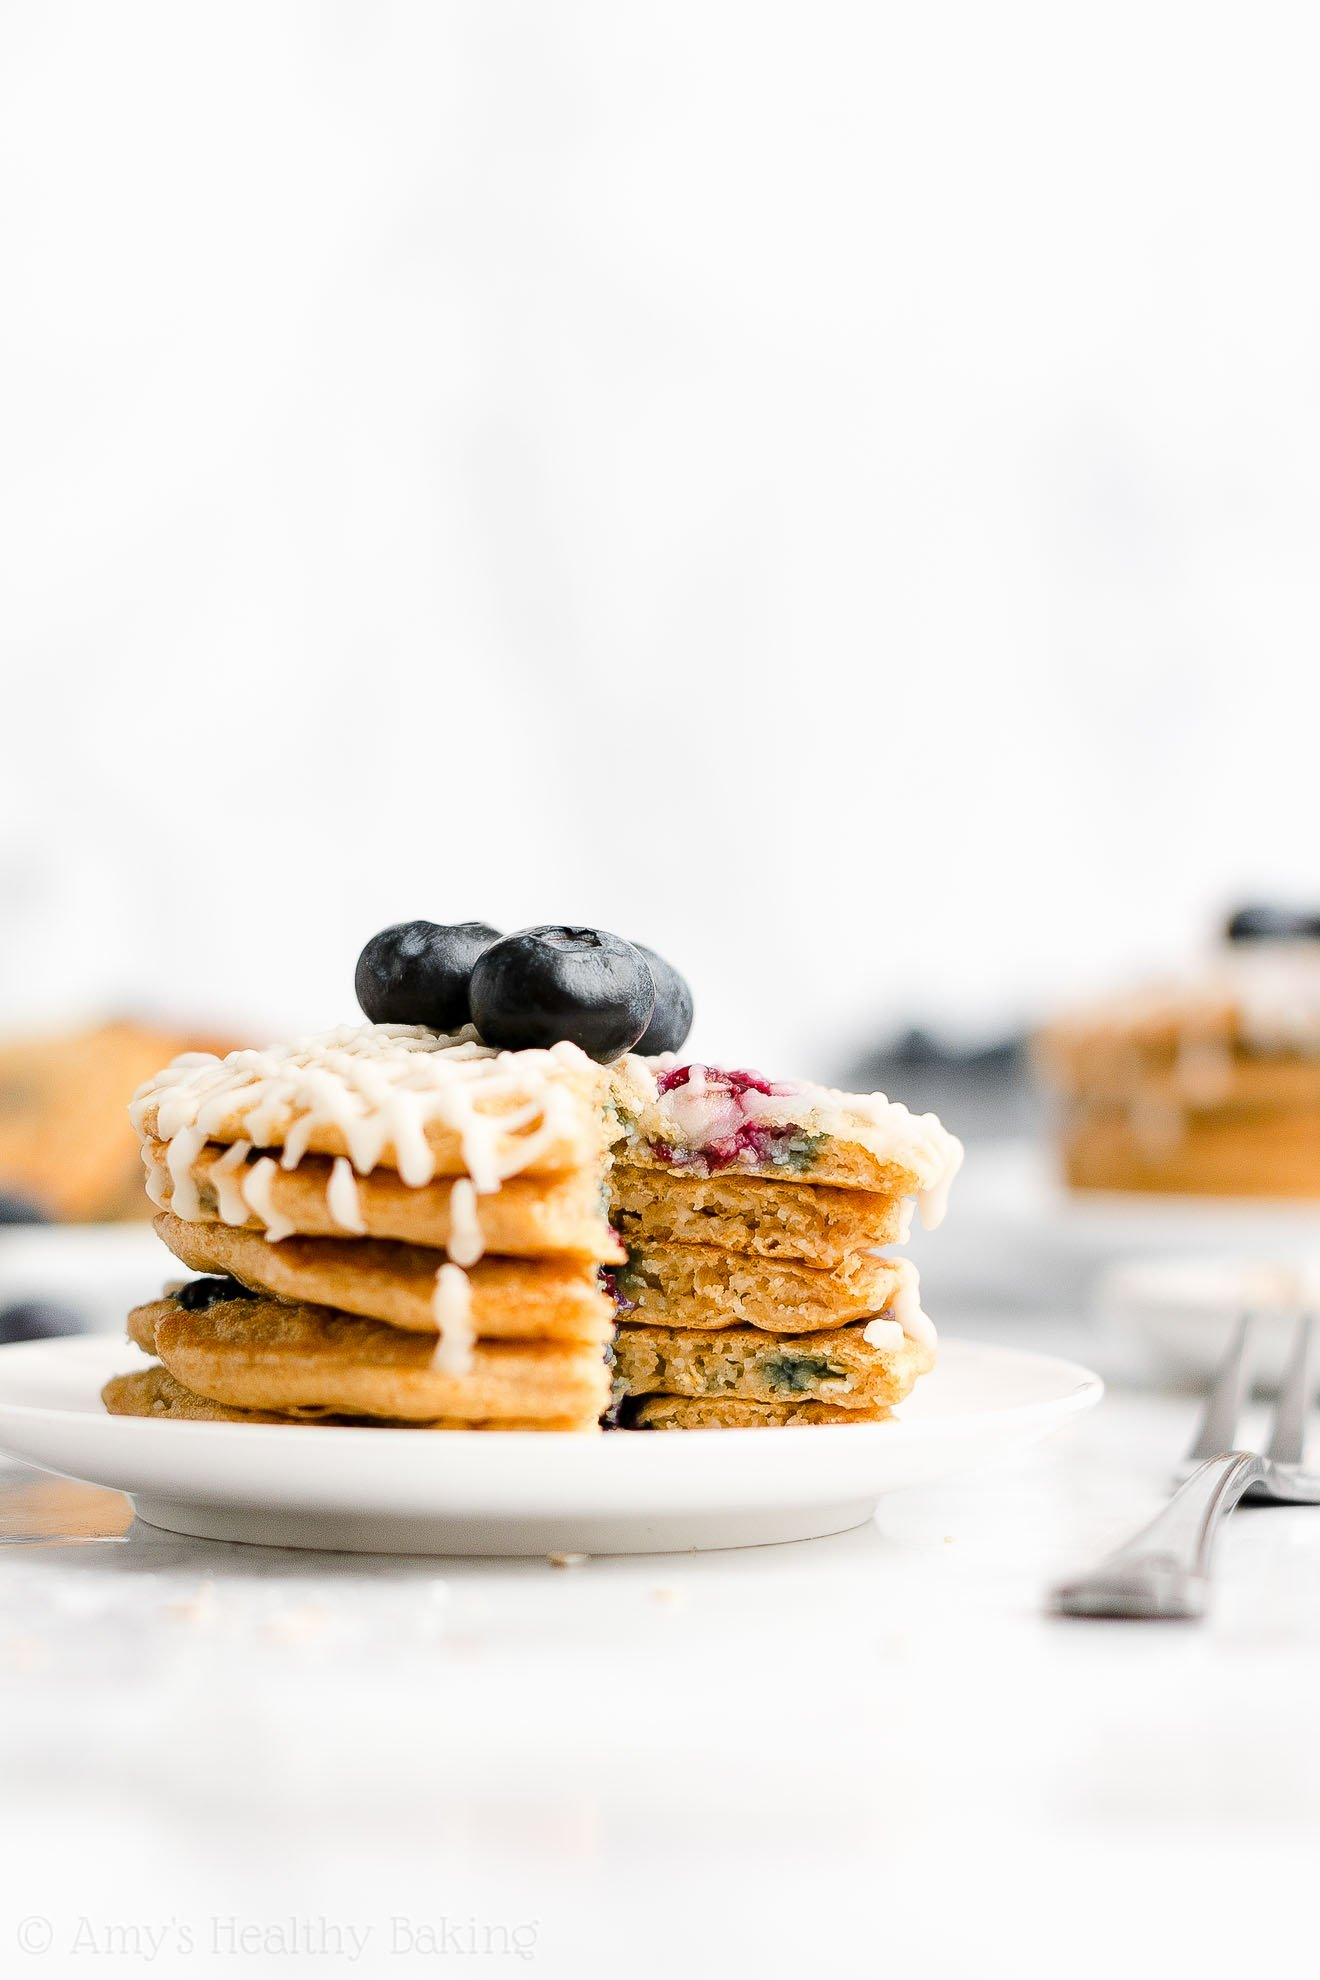 Easy Healthy Whole Wheat Low Calorie Fluffy Blueberry Oatmeal Pancakes